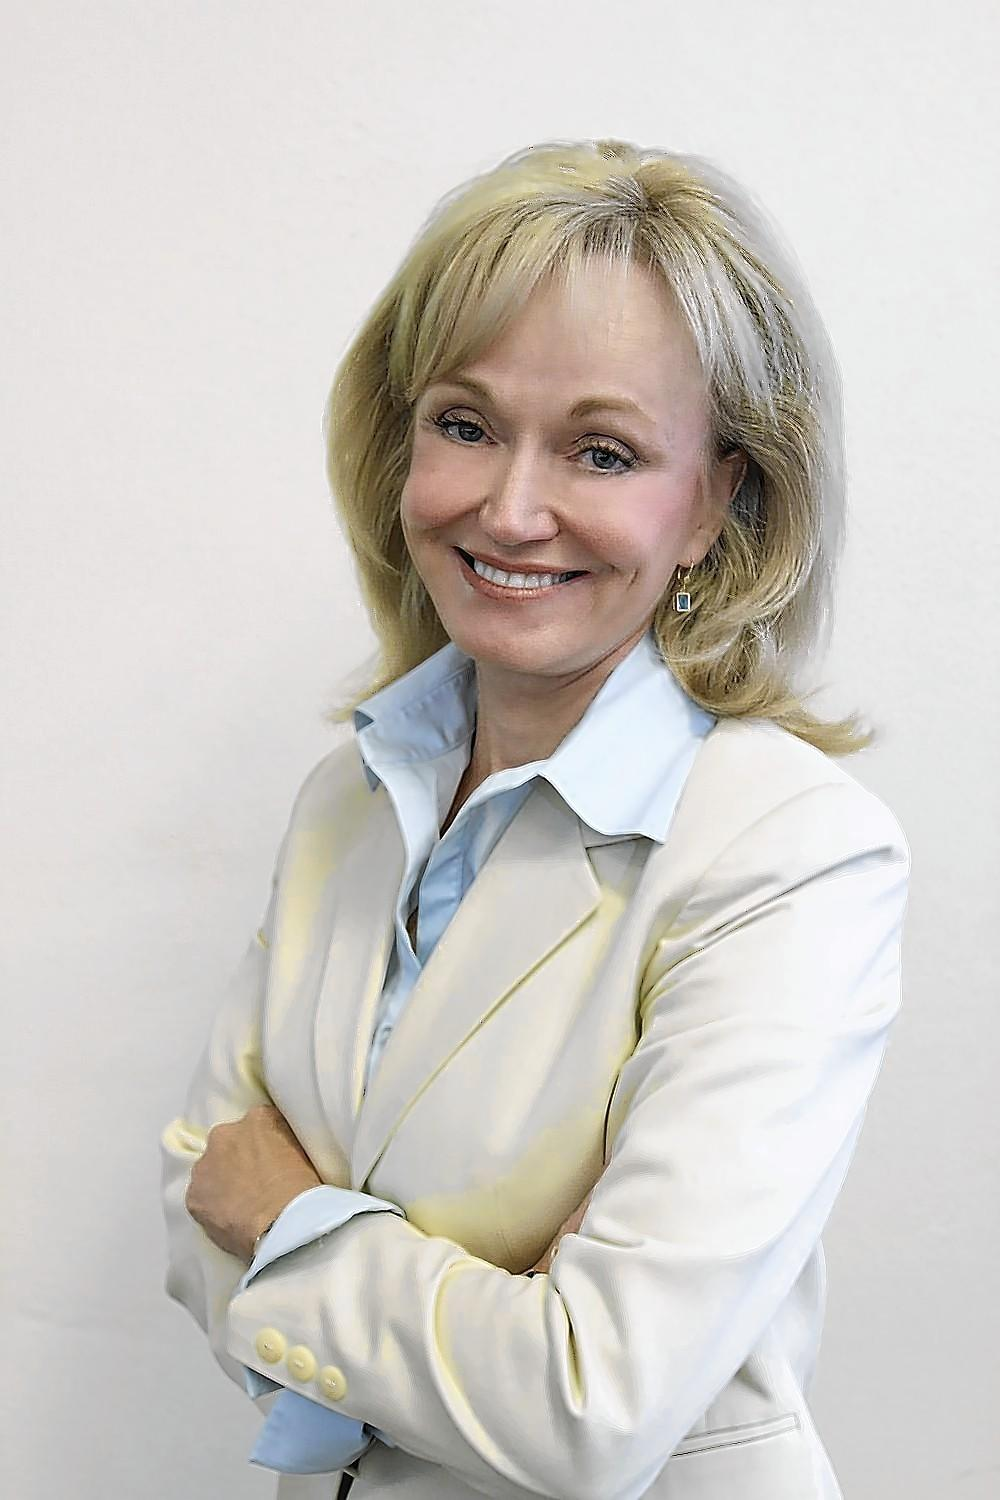 Laguna Beach Mayor Elizabeth Pearson will not seek reelection in this year's City Council race. Pearson cited her commitment as president and chief executive of Pacific Chorale, a nonprofit that is the resident choir of the Segerstrom Center for the Arts, as reason for her decision not seek a fourth council term.